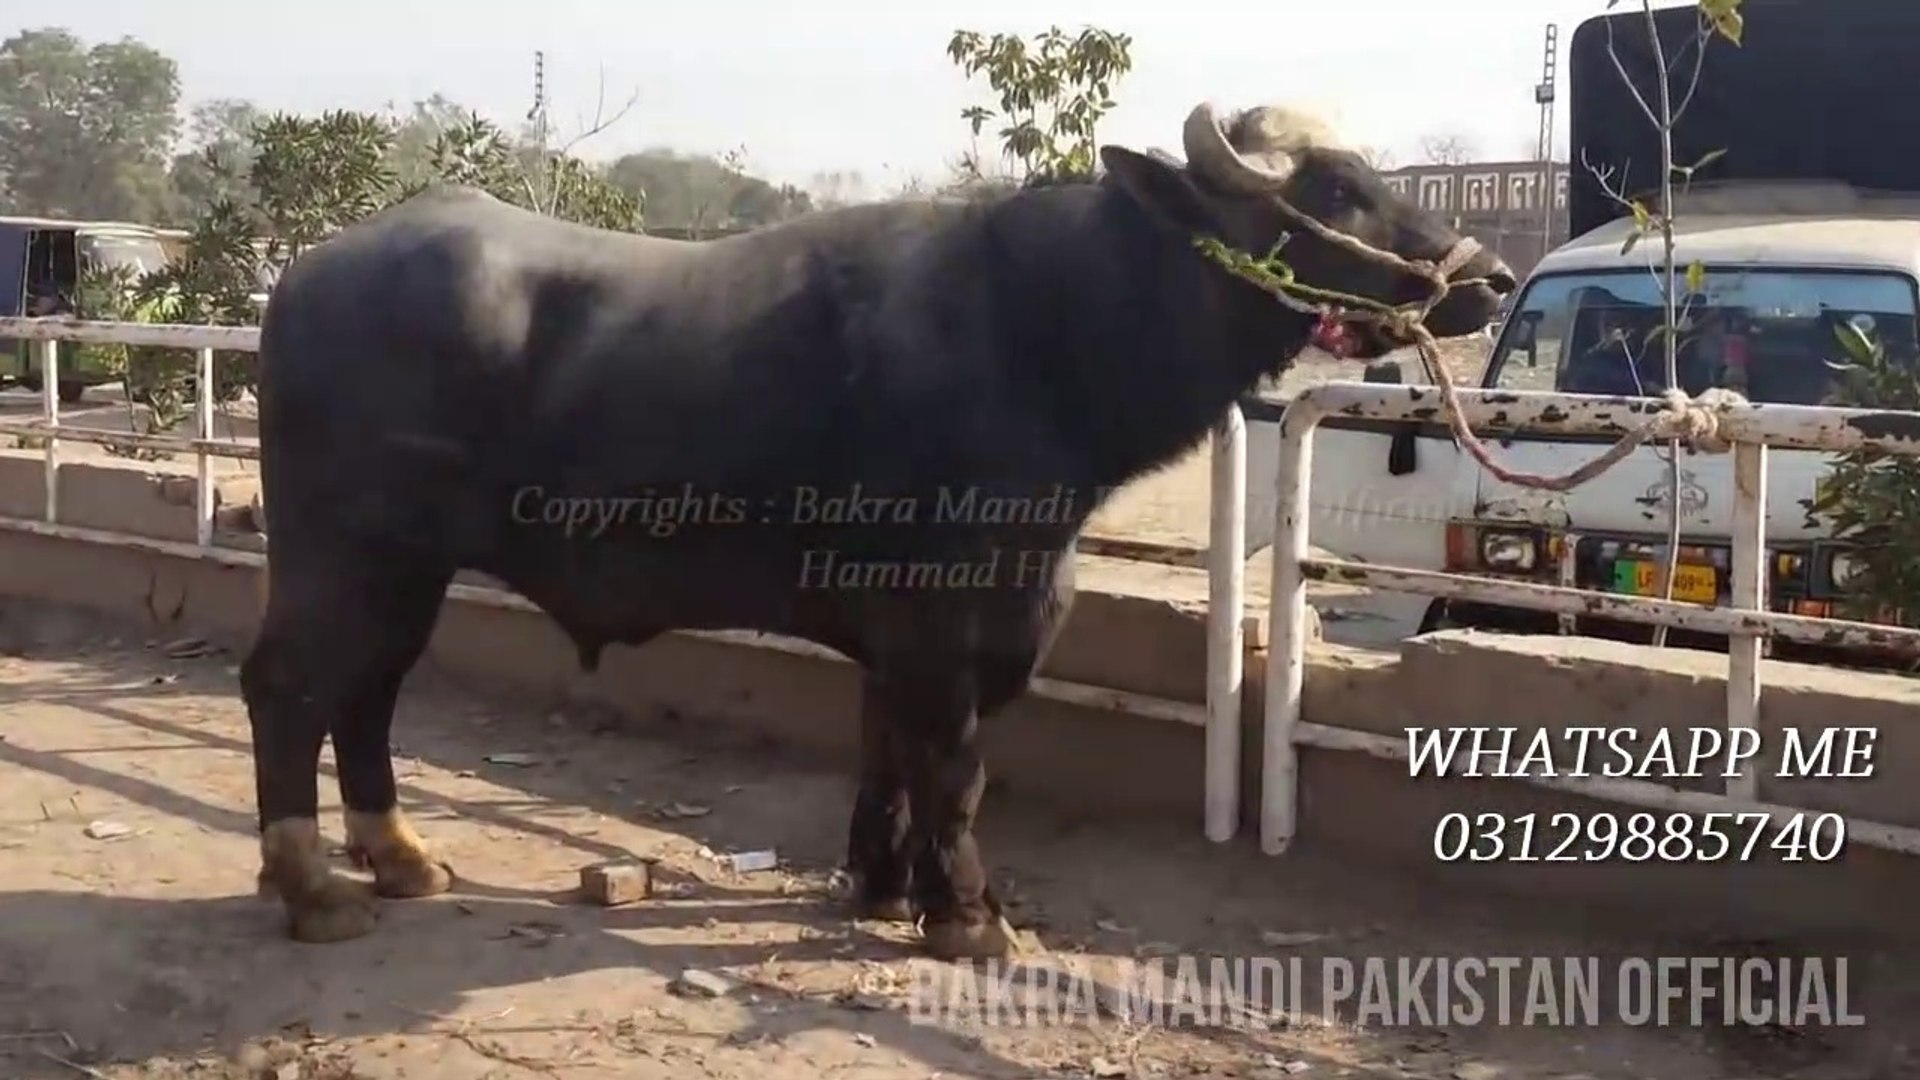 Bull for Qurbani - Angry Bull - Angry Bhainsa for Qurbani